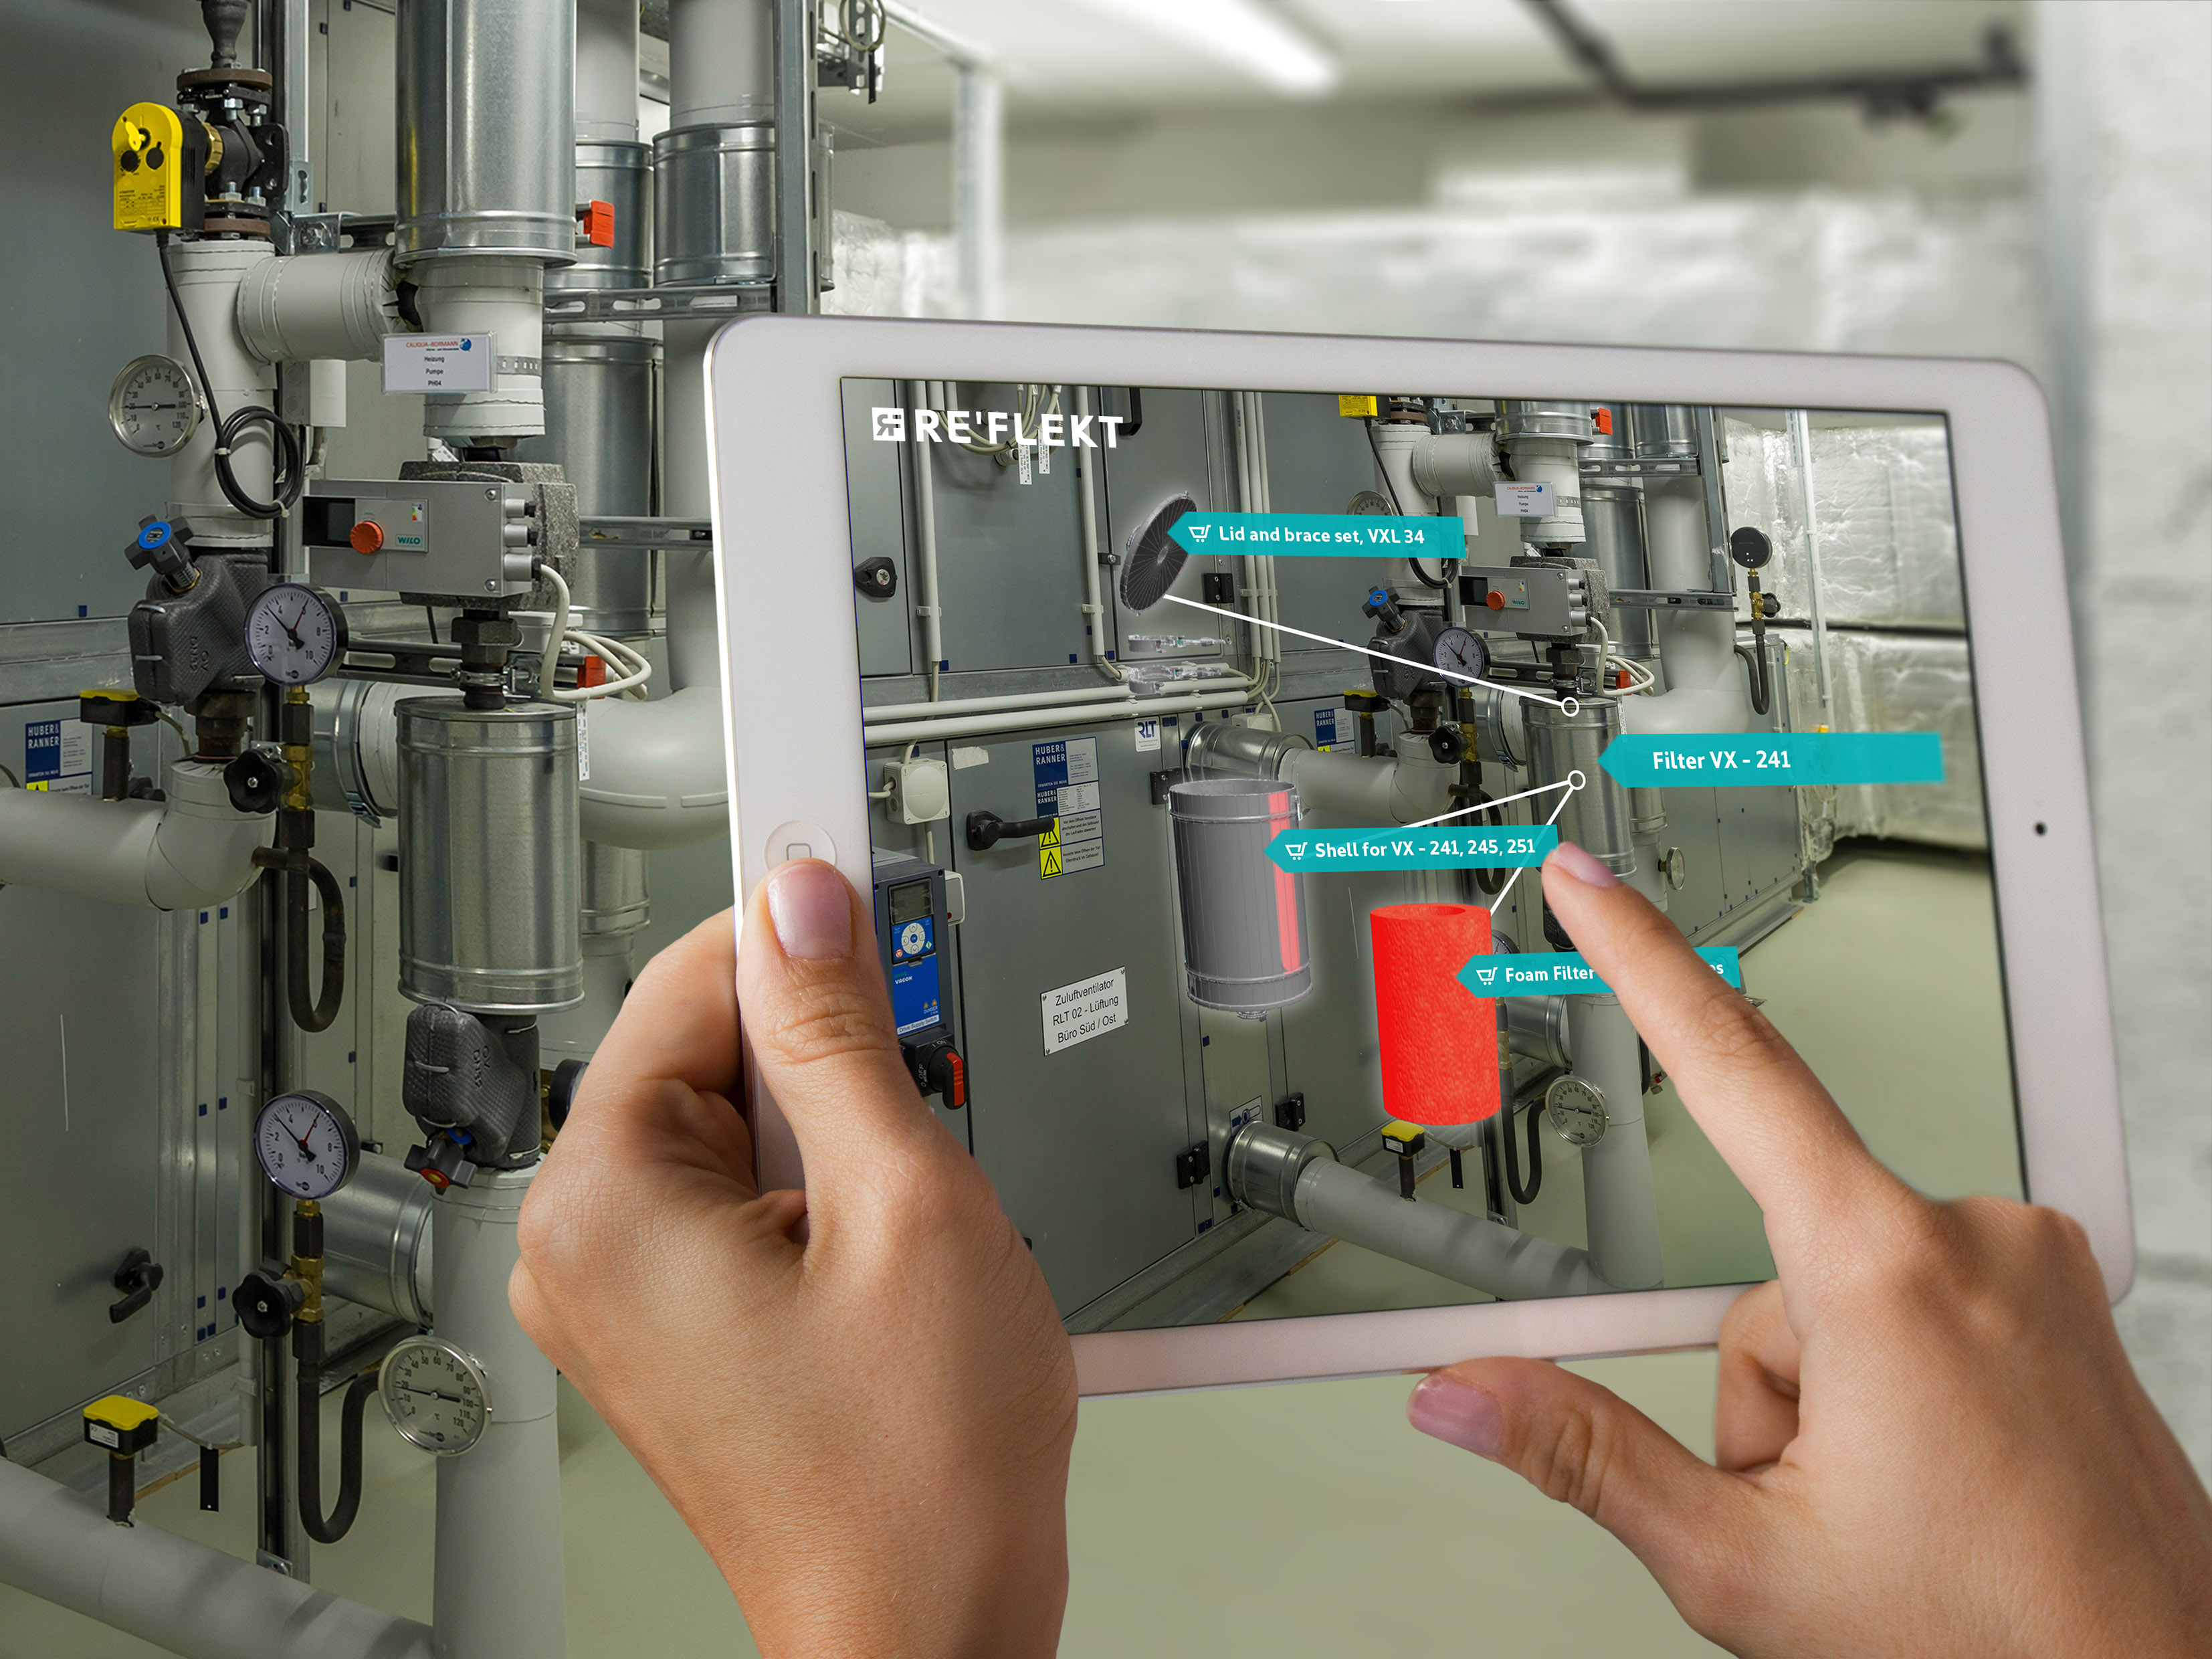 Augmented Reality in Industry 4.0 - A Great Gimmick or Potential Industry Changer?